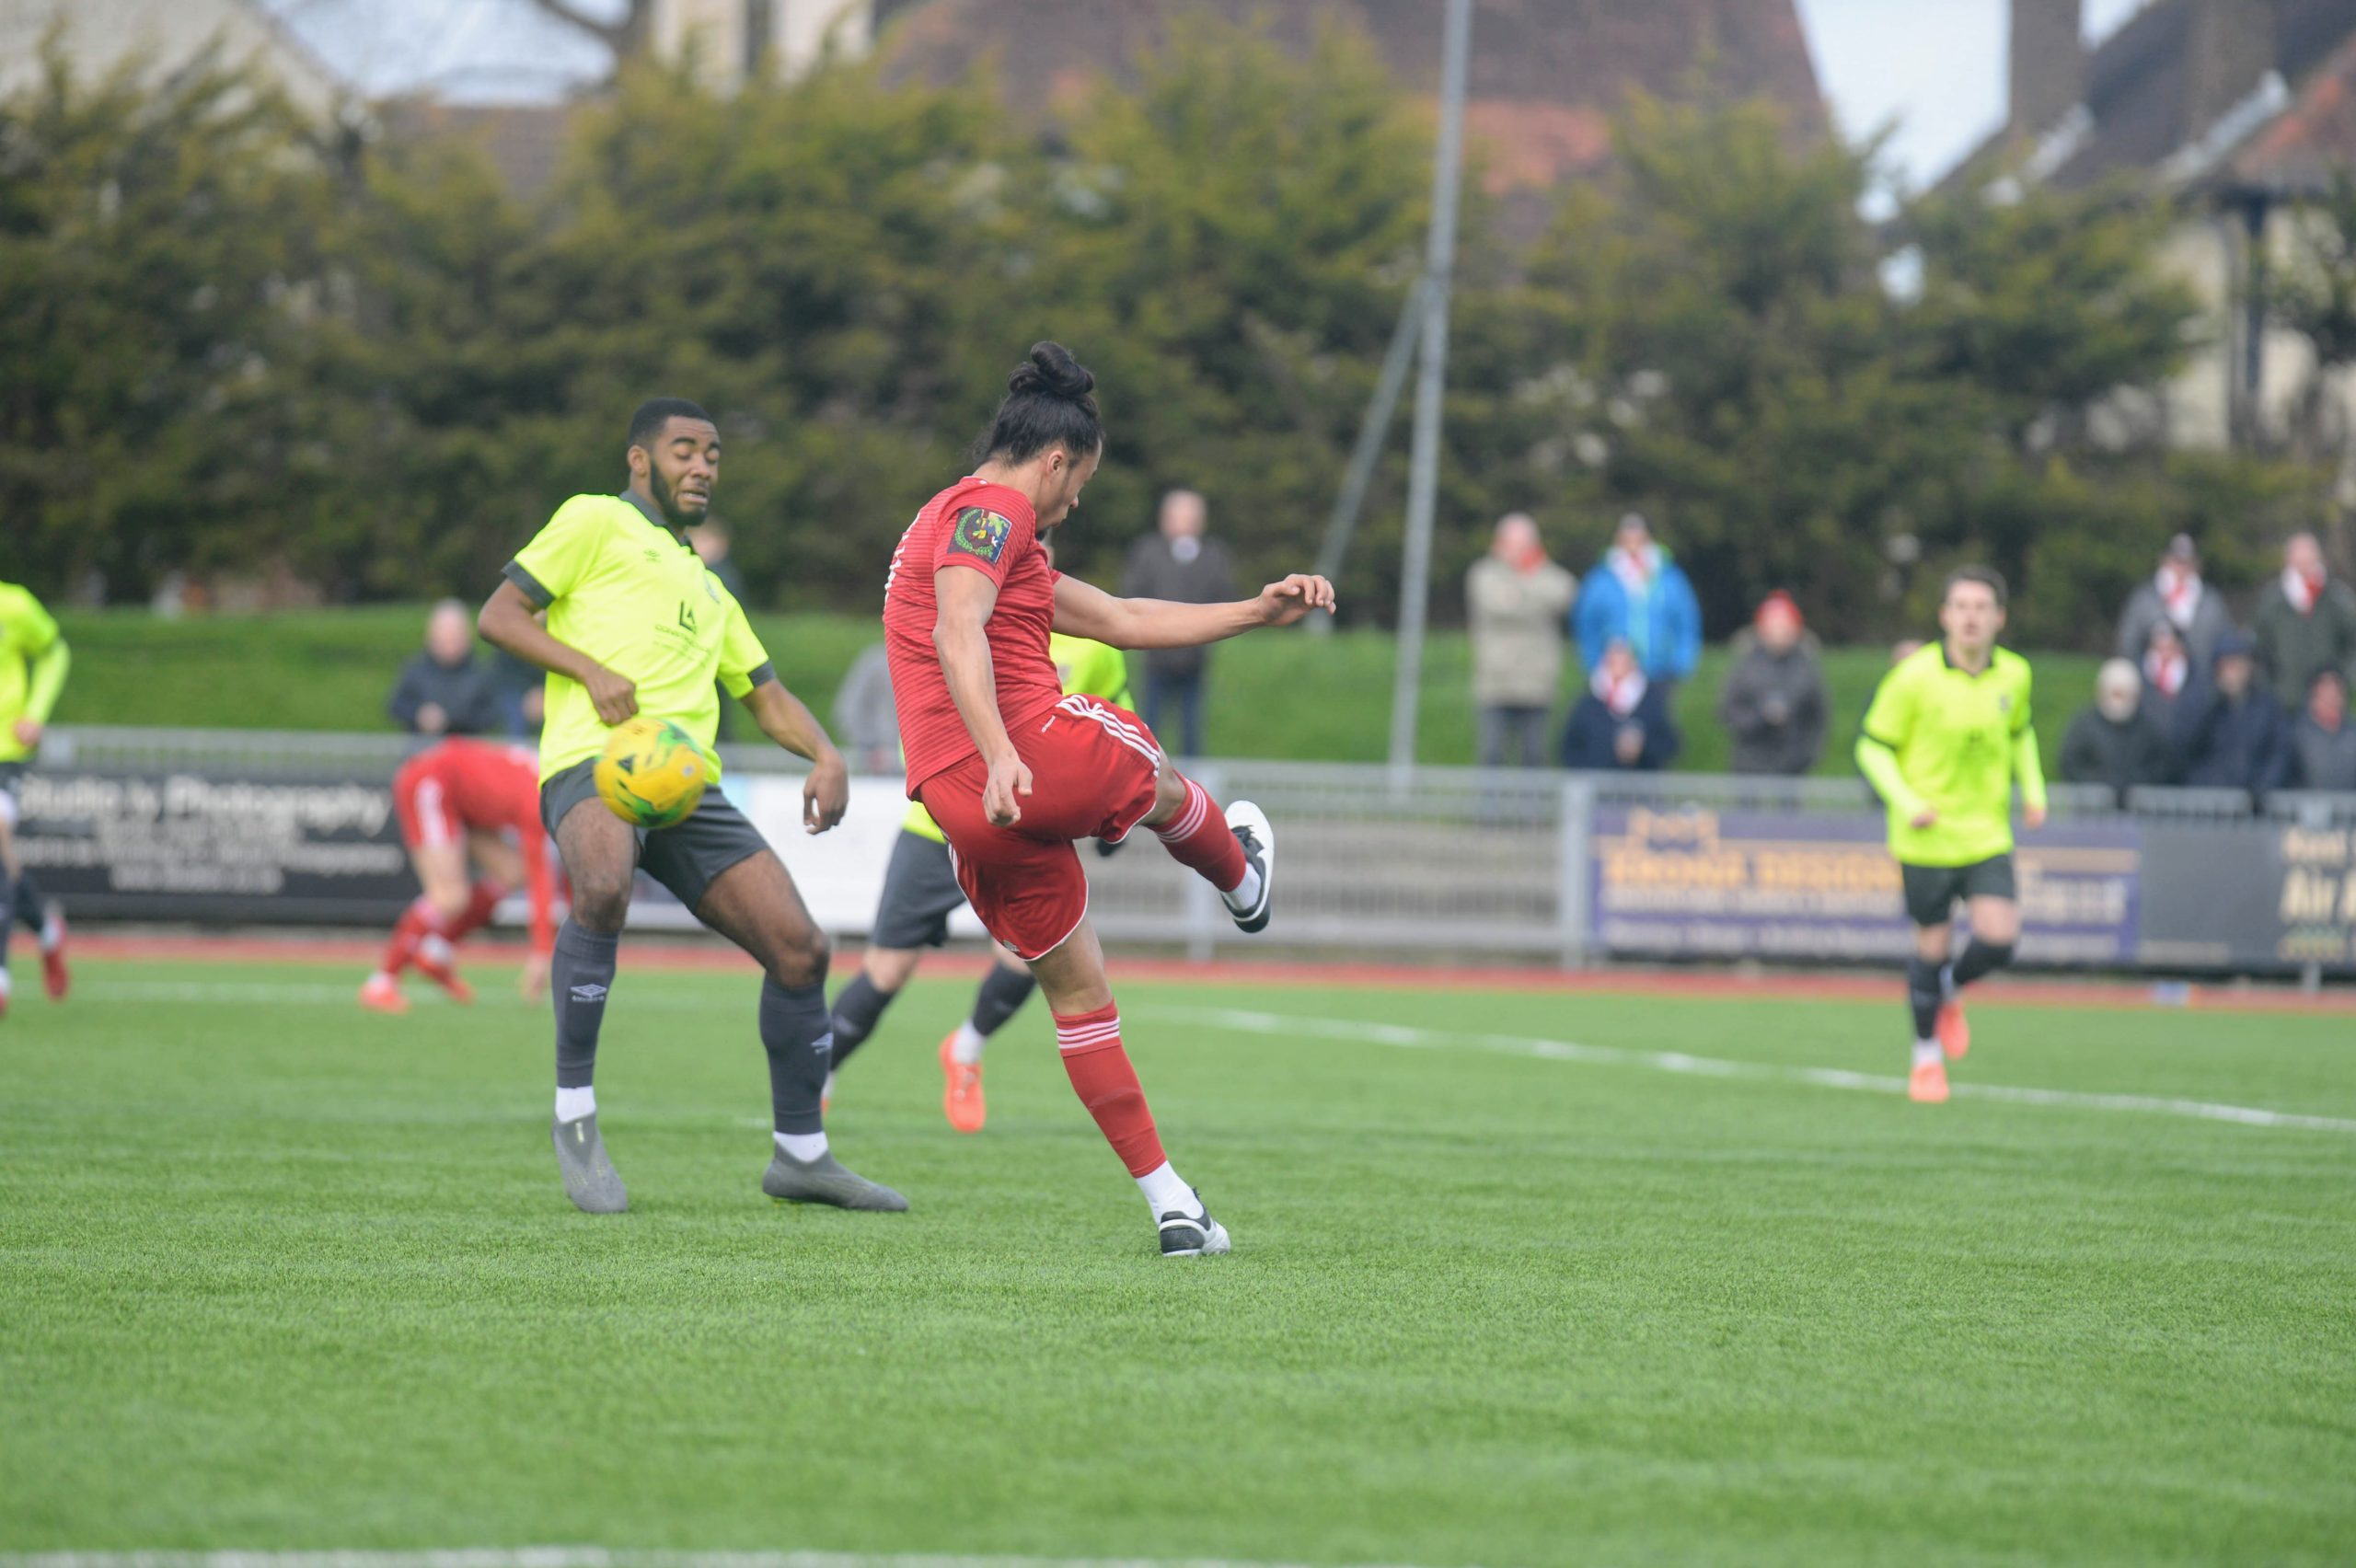 Read the full article - Worthing frustrated by the Scholars